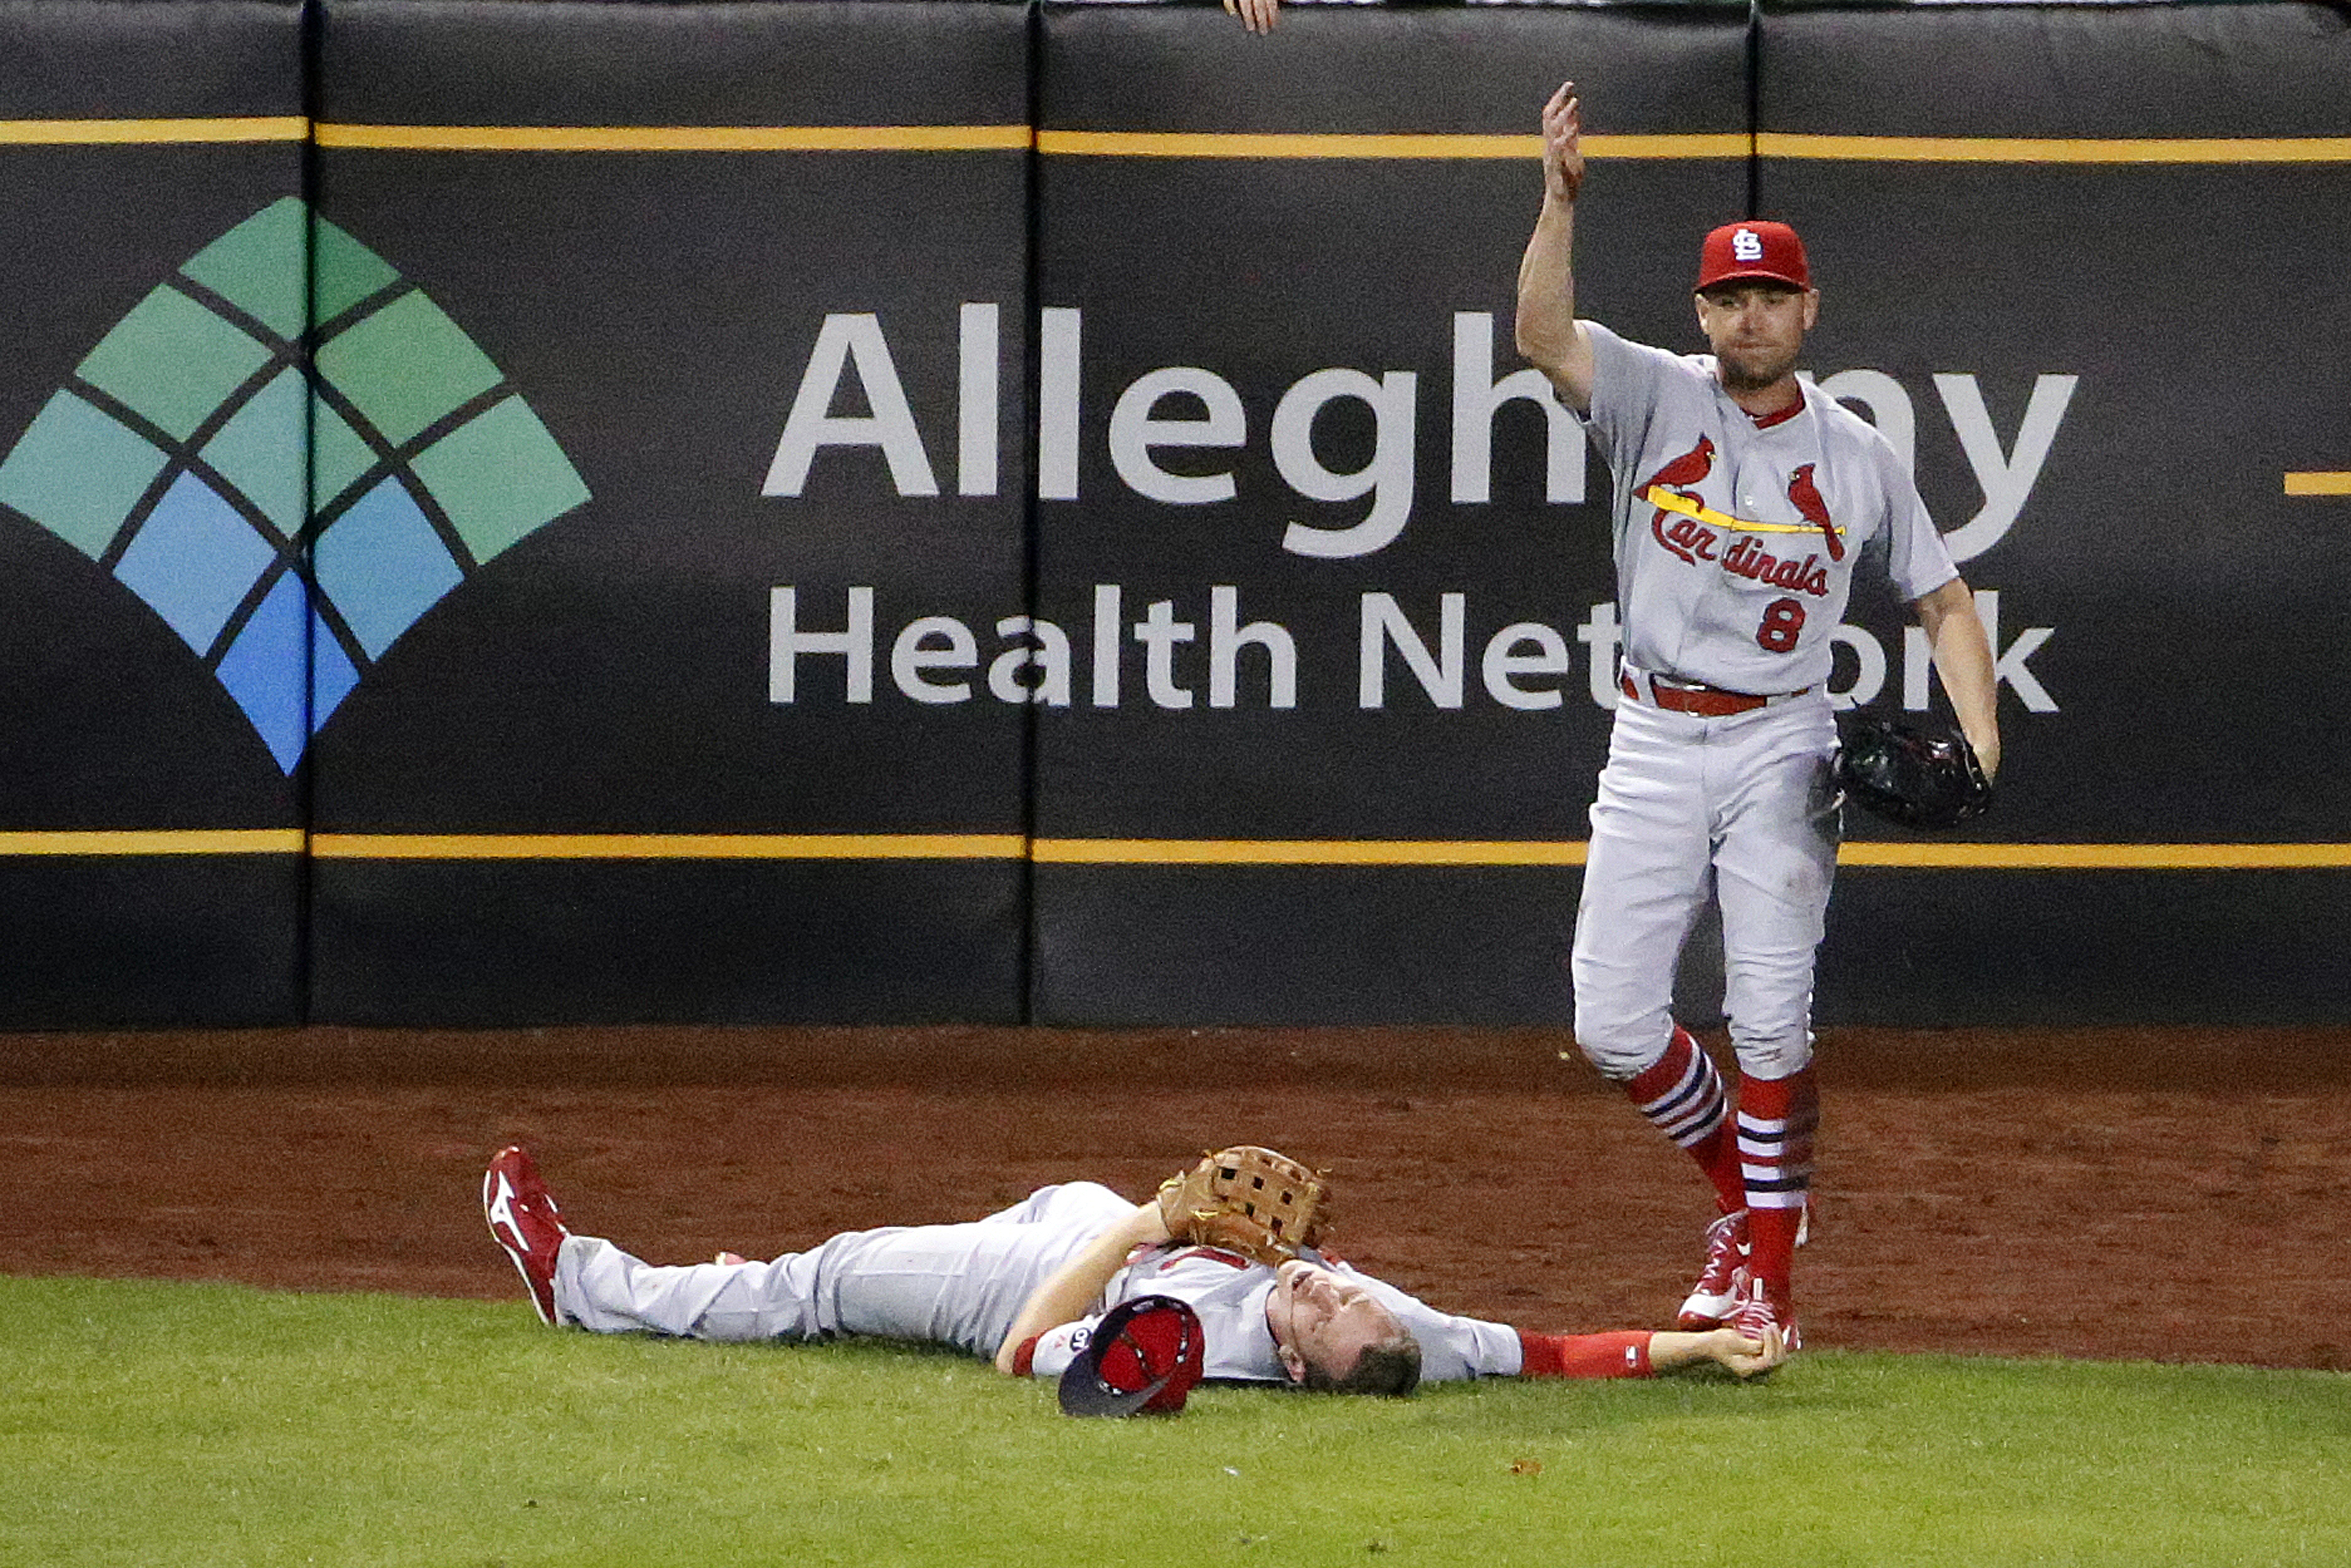 St. Louis Cardinals center fielder Peter Bourjos (8) calls for help after colliding with St. Louis Cardinals left fielder Stephen Piscotty while catching a fly ball by Pittsburgh Pirates' Josh Harrison in the seventh inning of a baseball game in Pittsburg